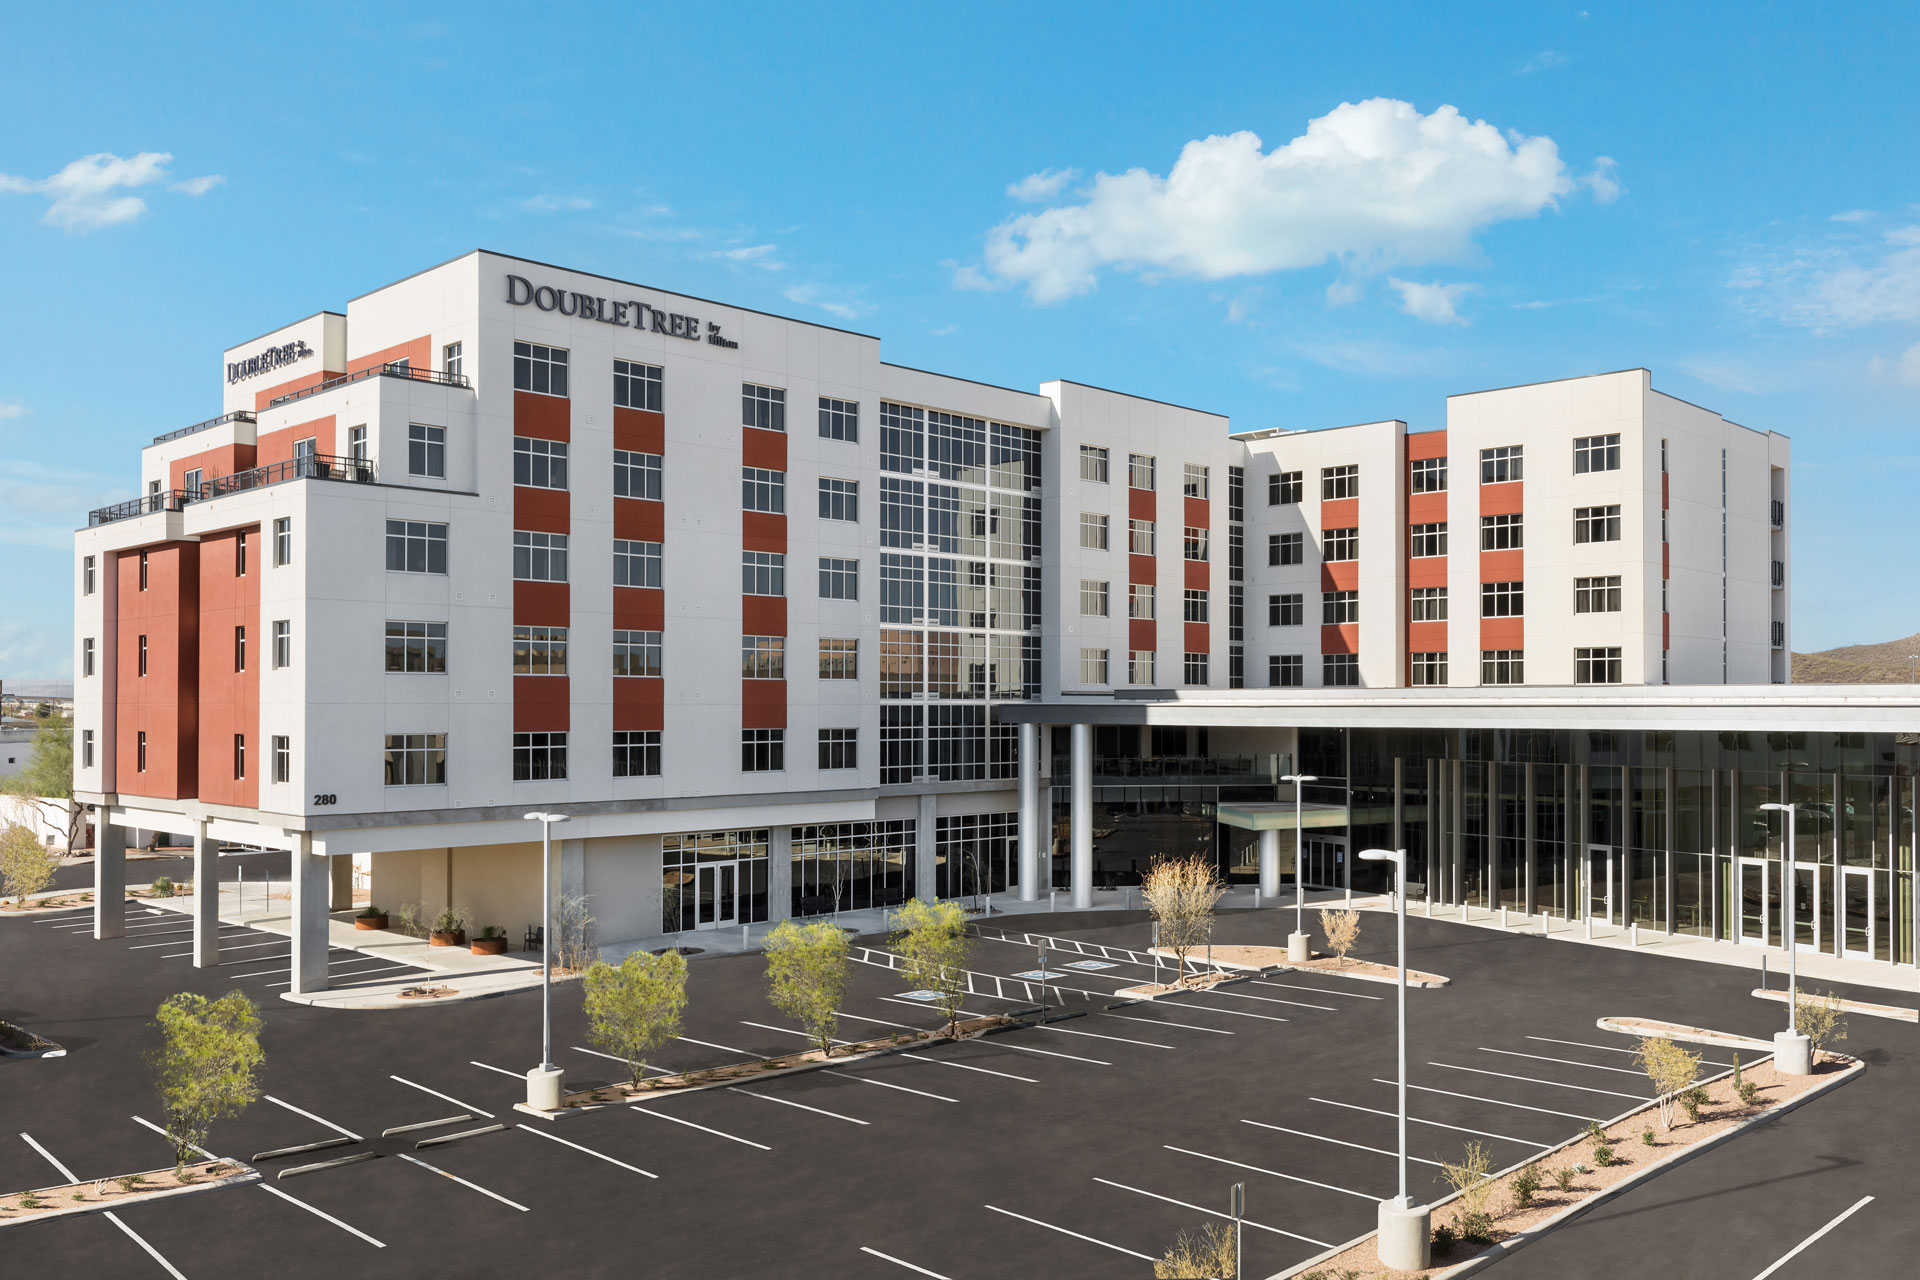 The DoubleTree by Hilton Tucson Front Exterior Day